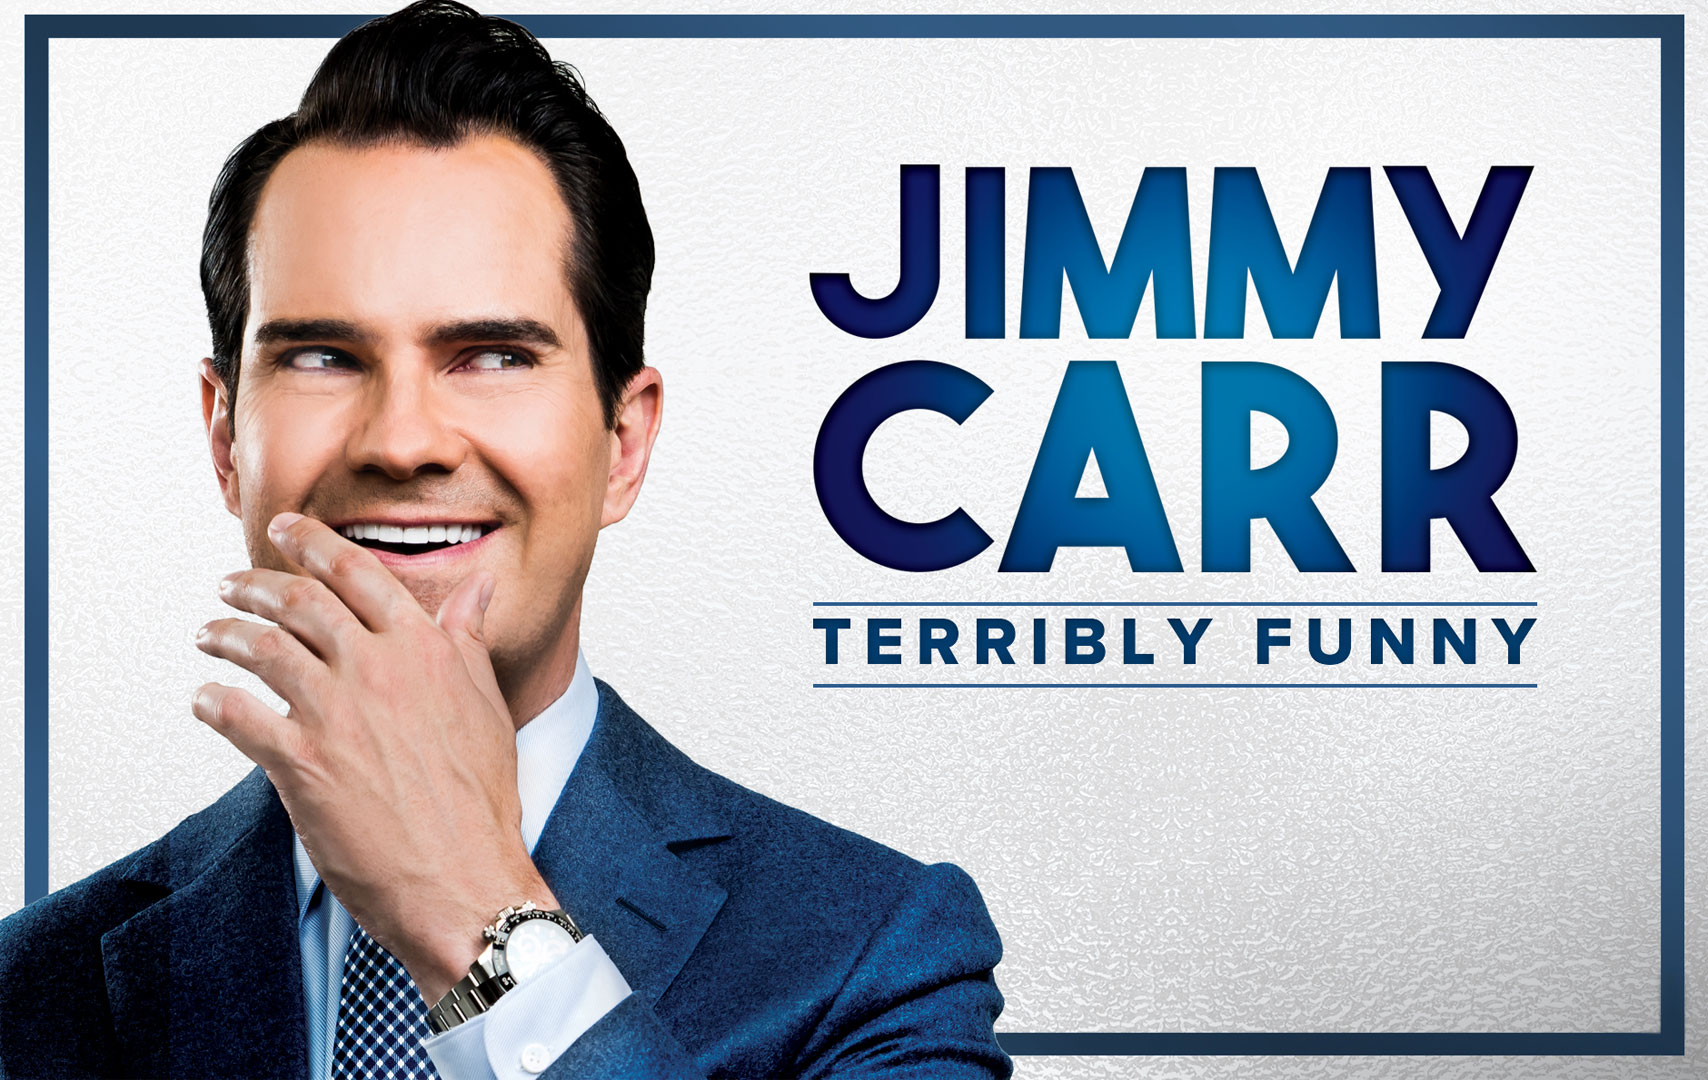 Dantdm Tour 2020 Jimmy Carr   Terribly Funny 2020